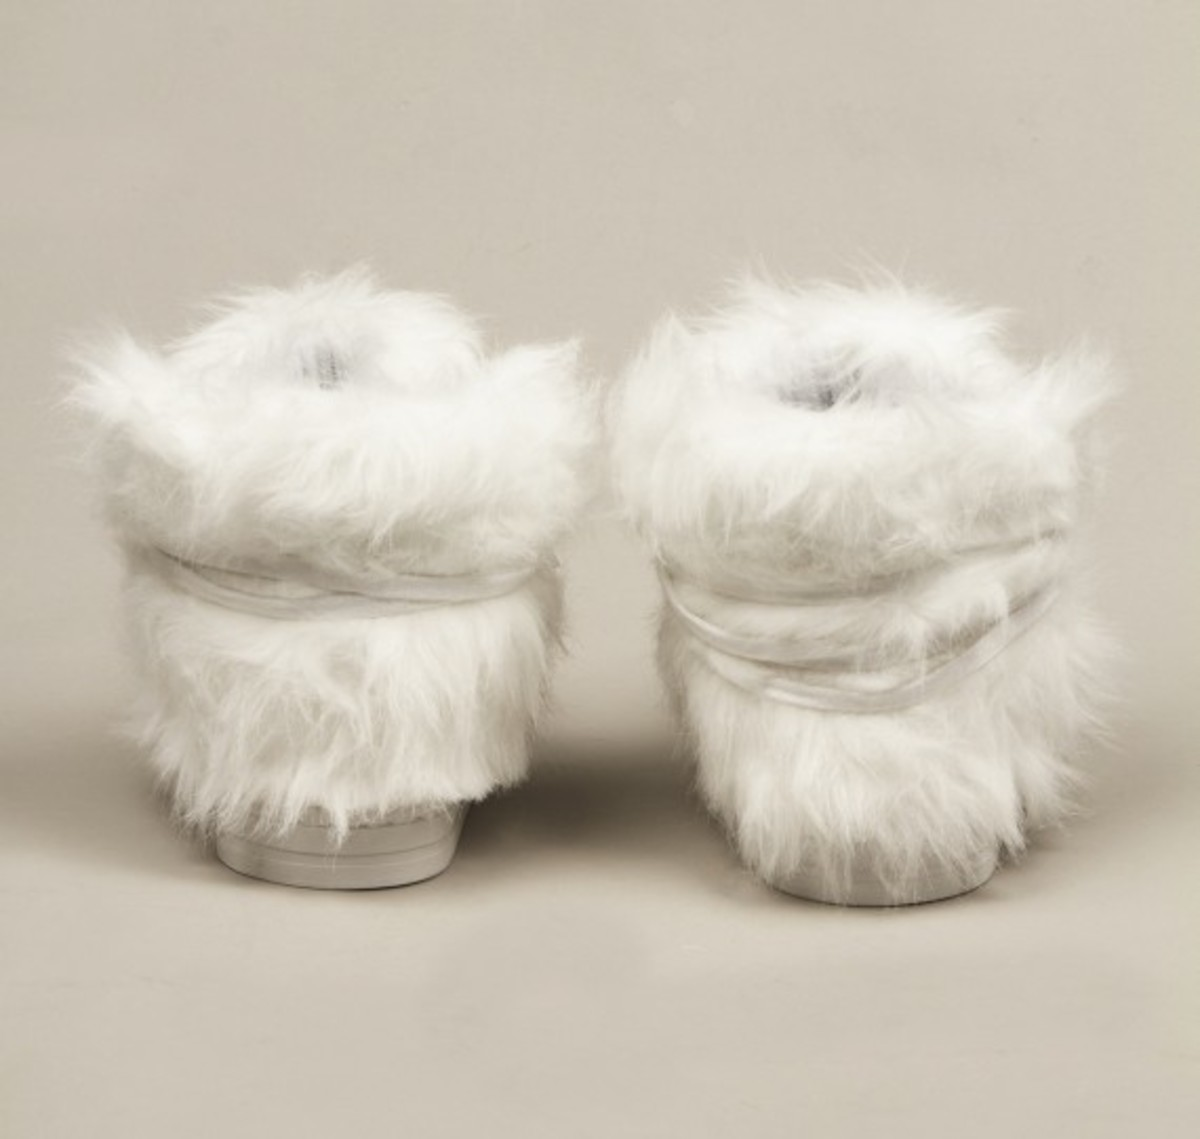 terence-koh-opening-ceremony-forfex-furry-sneakers-03